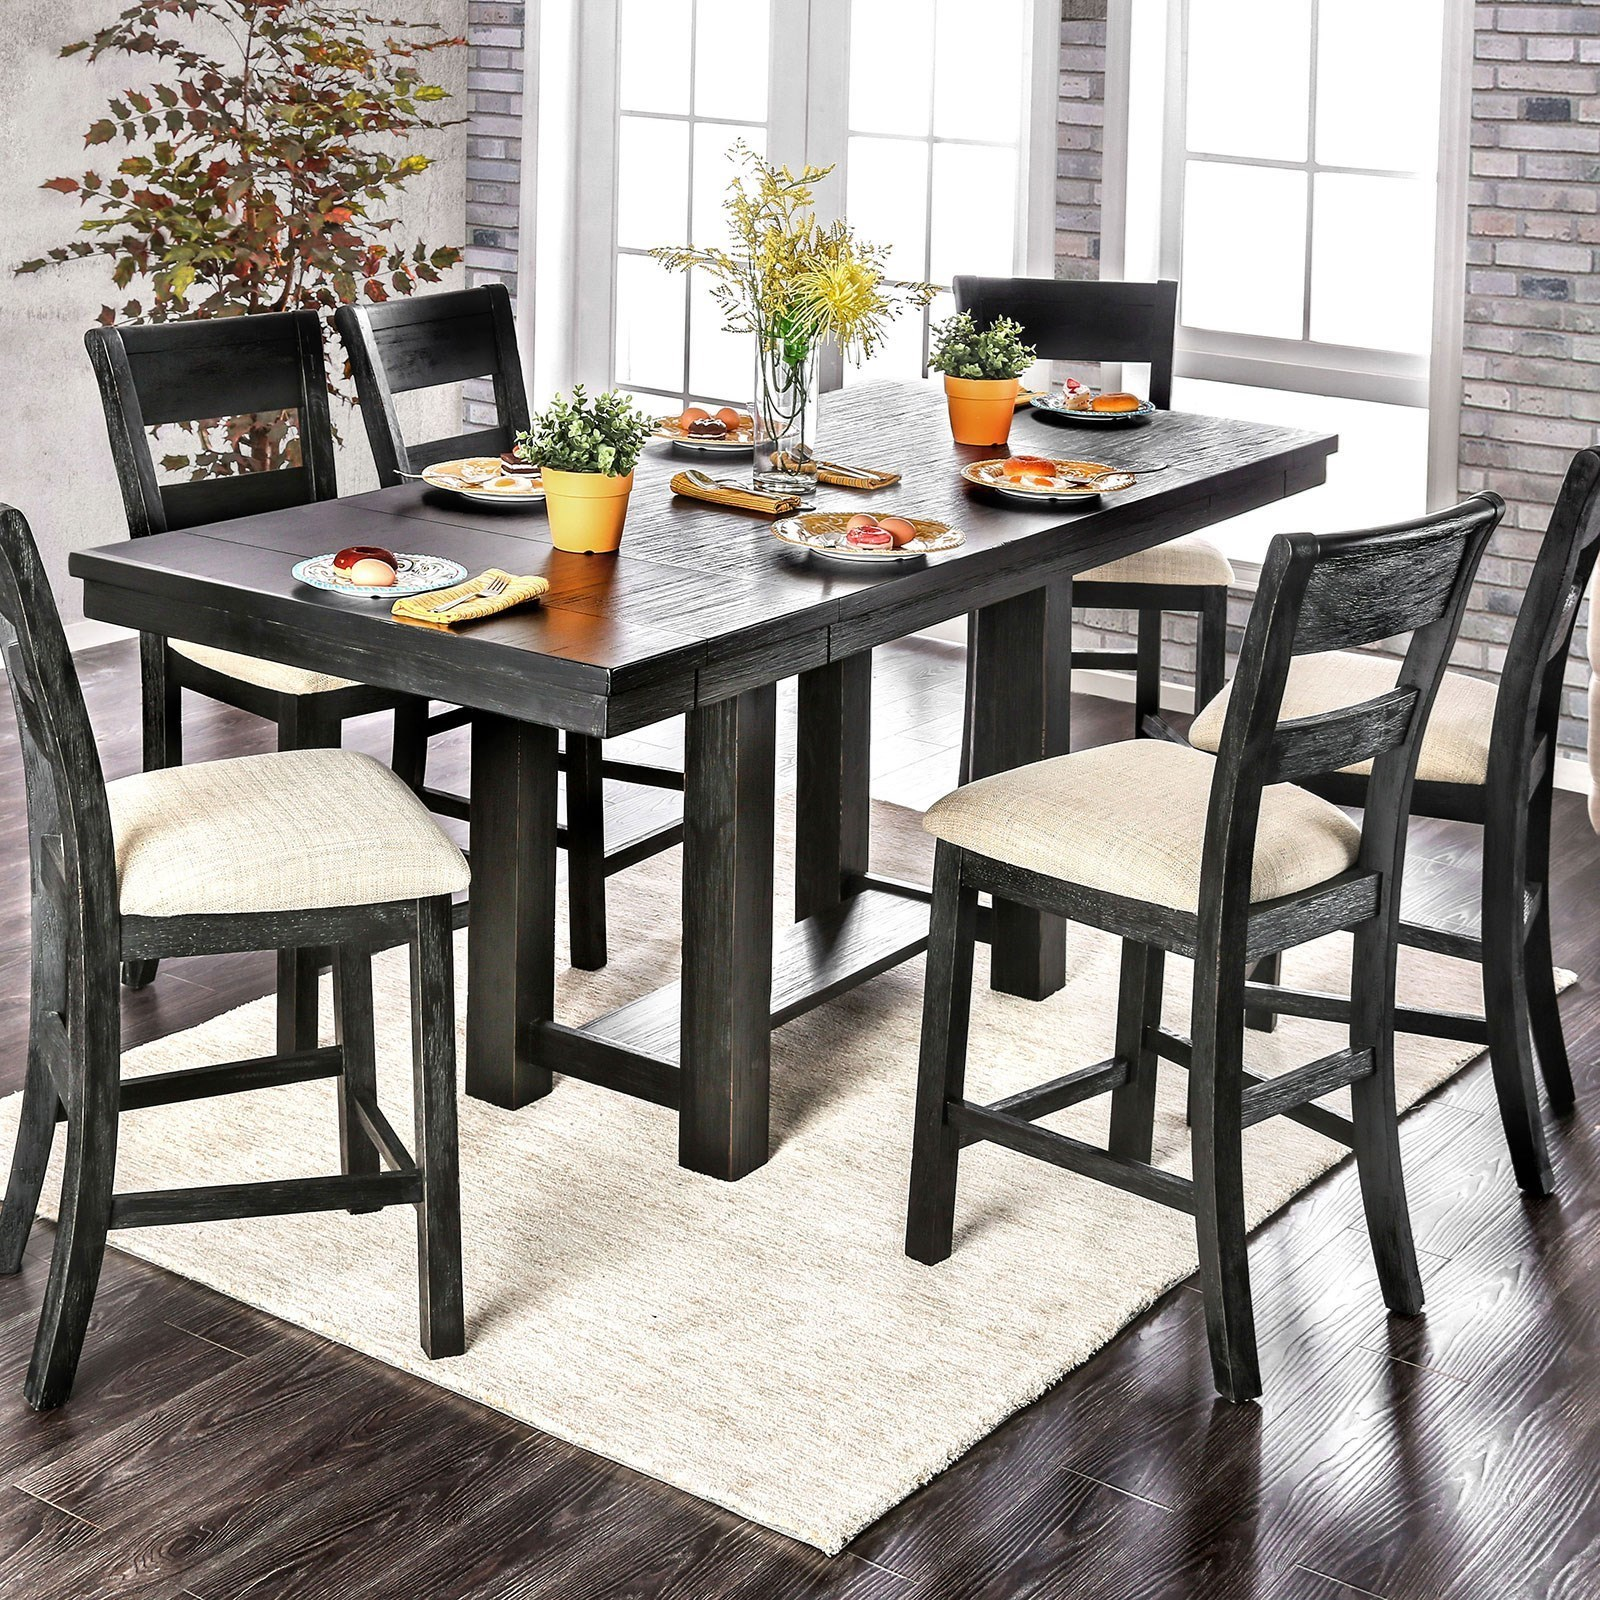 Thomaston I Counter Height Table at Household Furniture